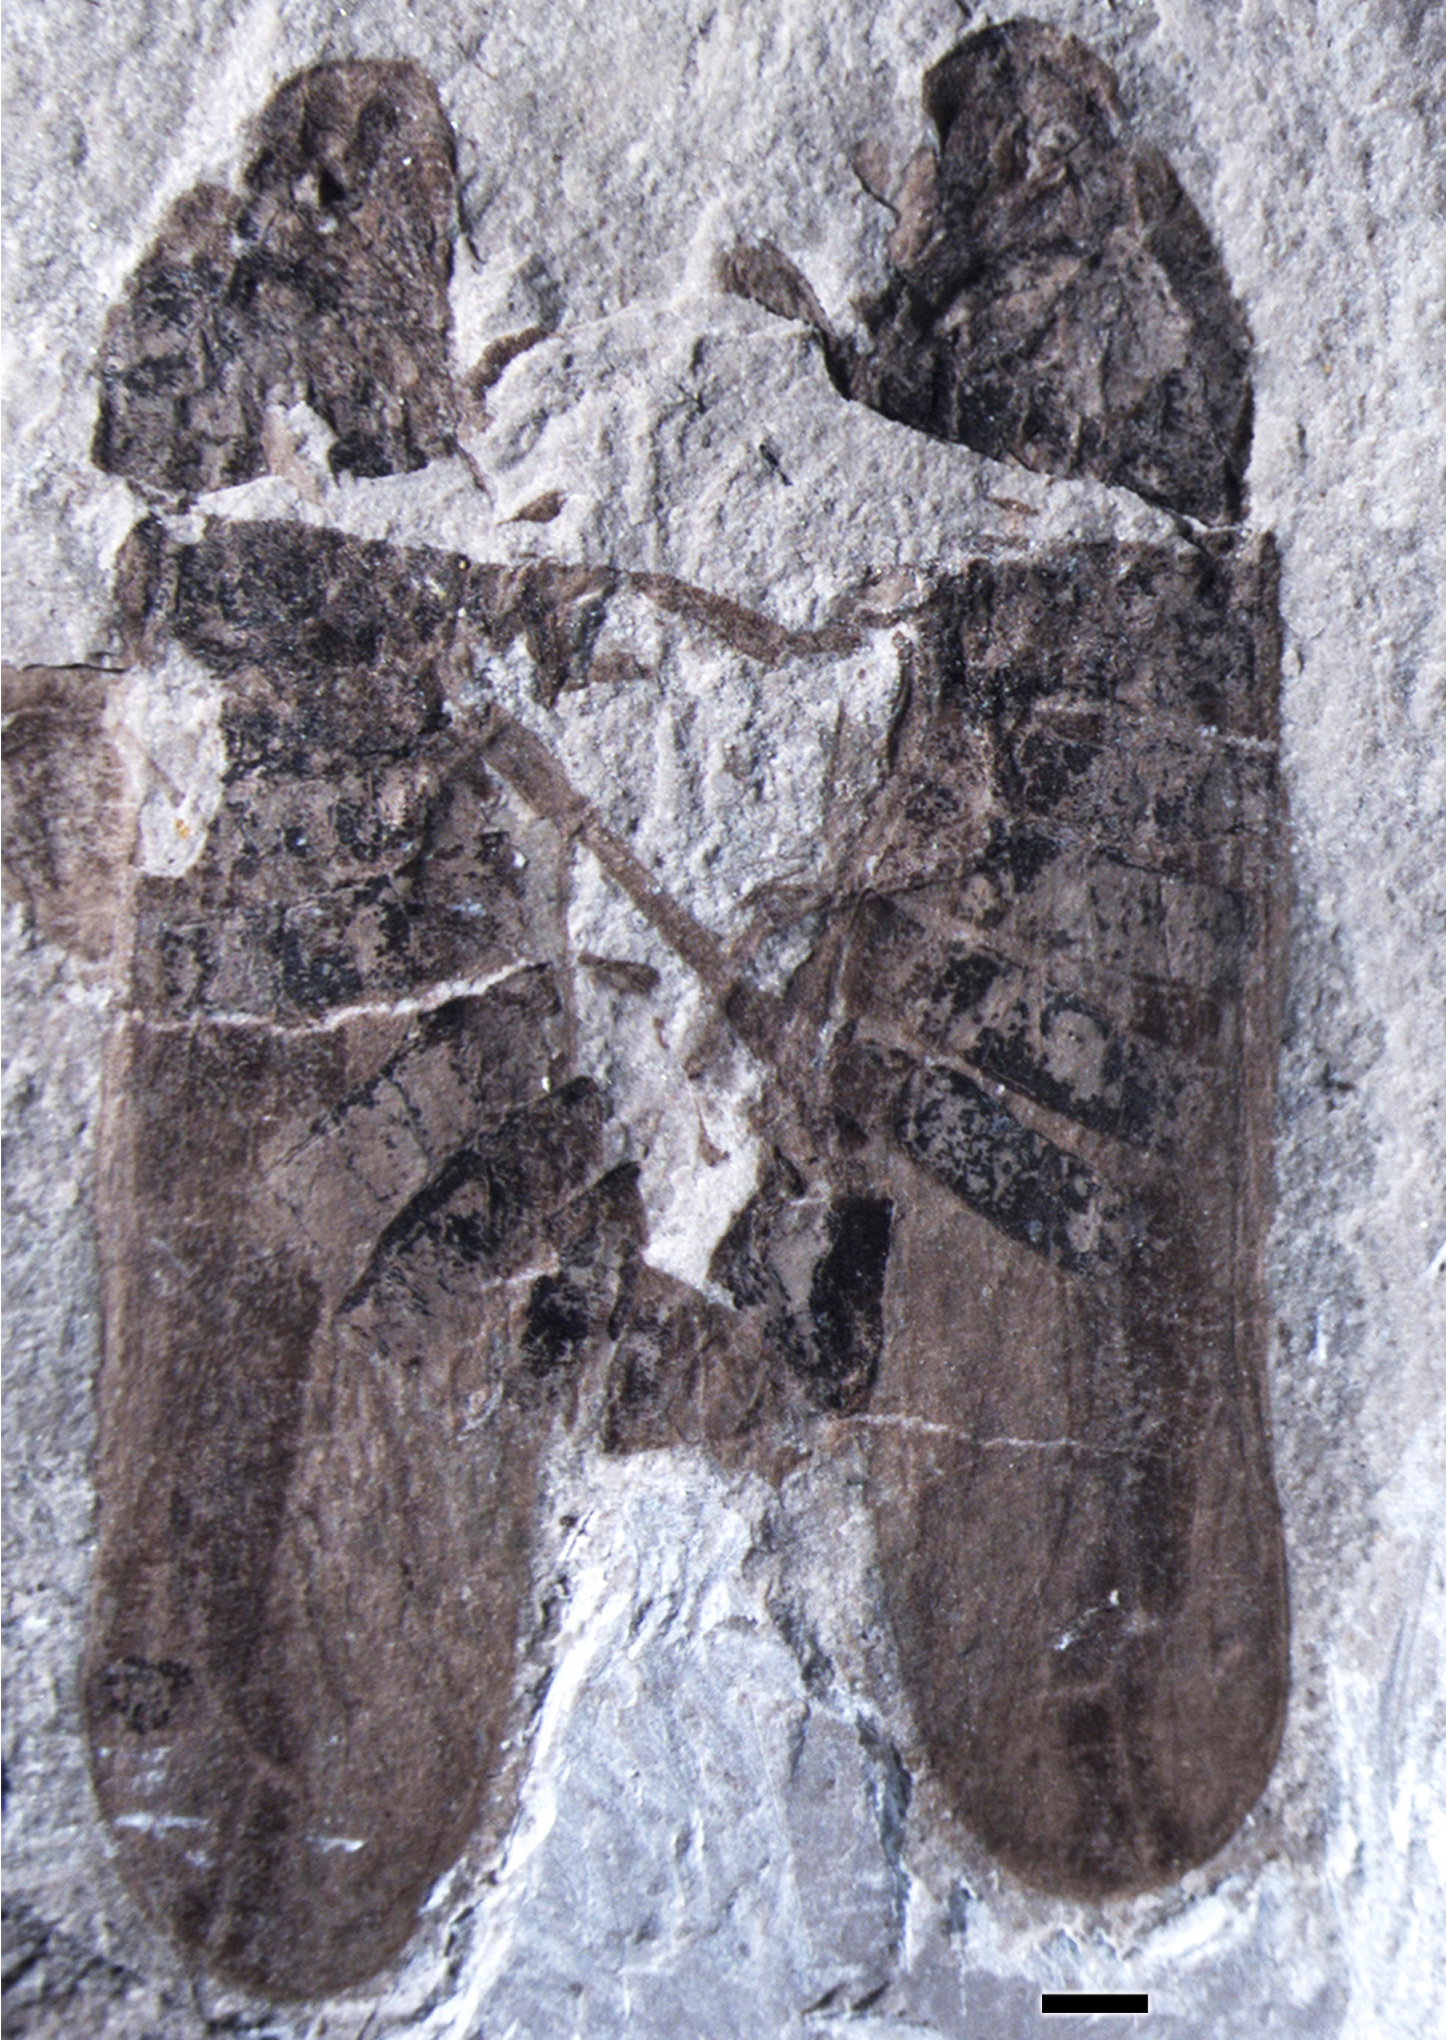 This image shows a holotype male, on the right, and allotype female, on the left. Credit: PLoS ONE 8(11): e78188. doi:10.1371/journal.pone.0078188